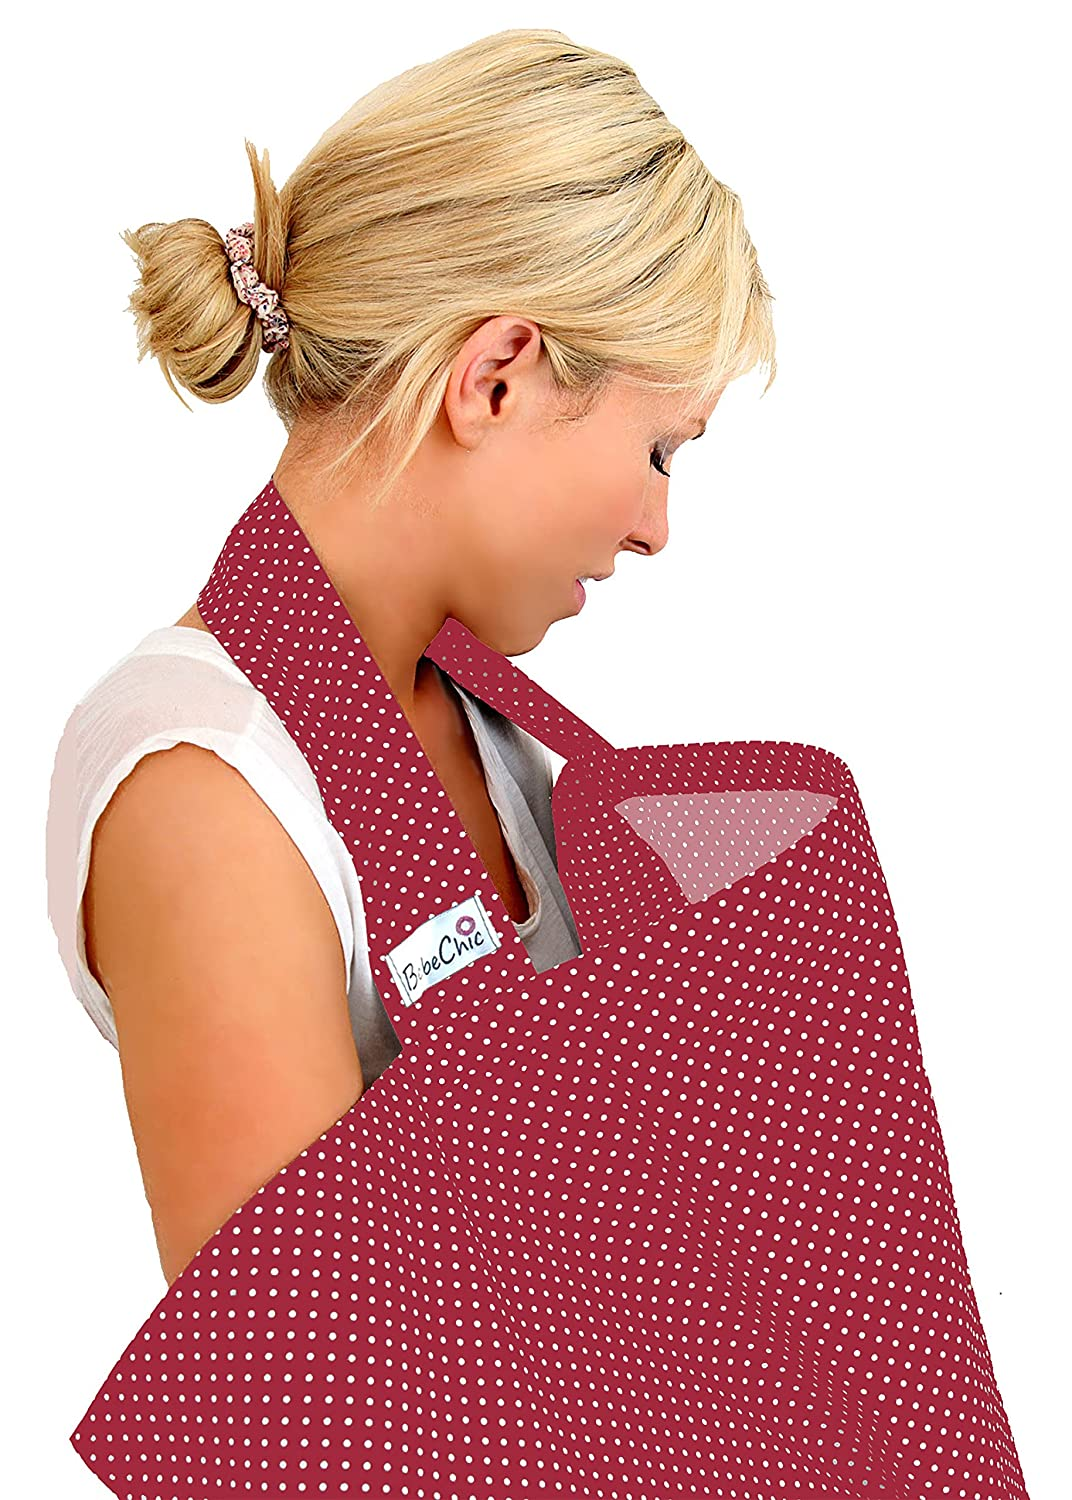 BebeChic.UK * Top Quality Oeko-Tex® Certified 100% Cotton * Breastfeeding Covers * Boned Nursing Tops - with Storage Bag - red wine / white dot BebeChic Limited redwine01